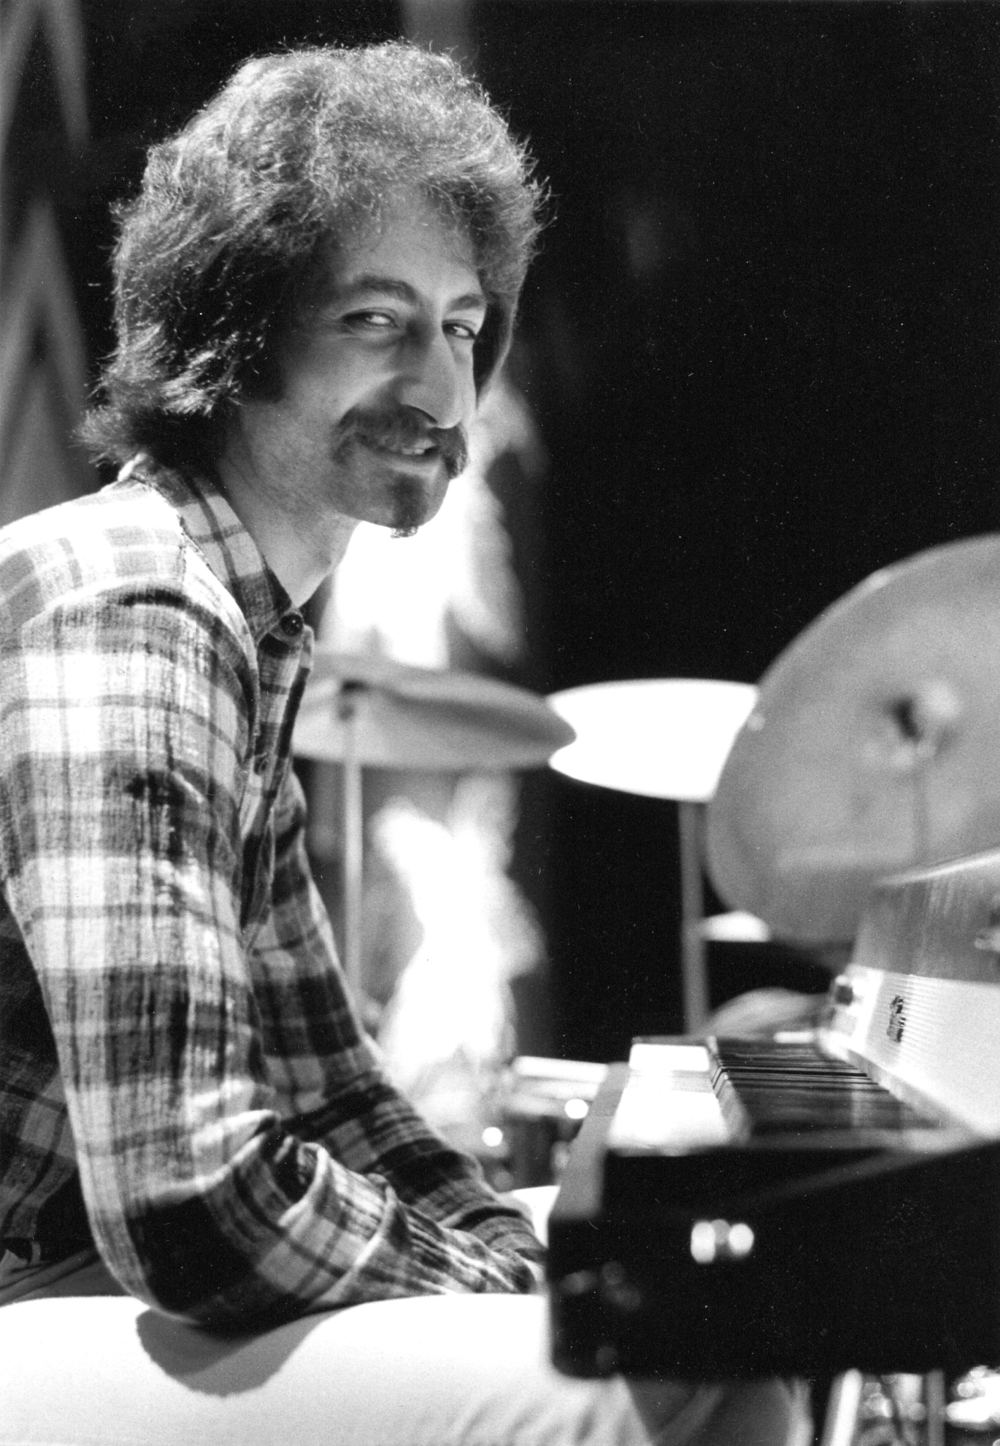 Armen Donelian as a member of Mongo Santamaria's band (1975)